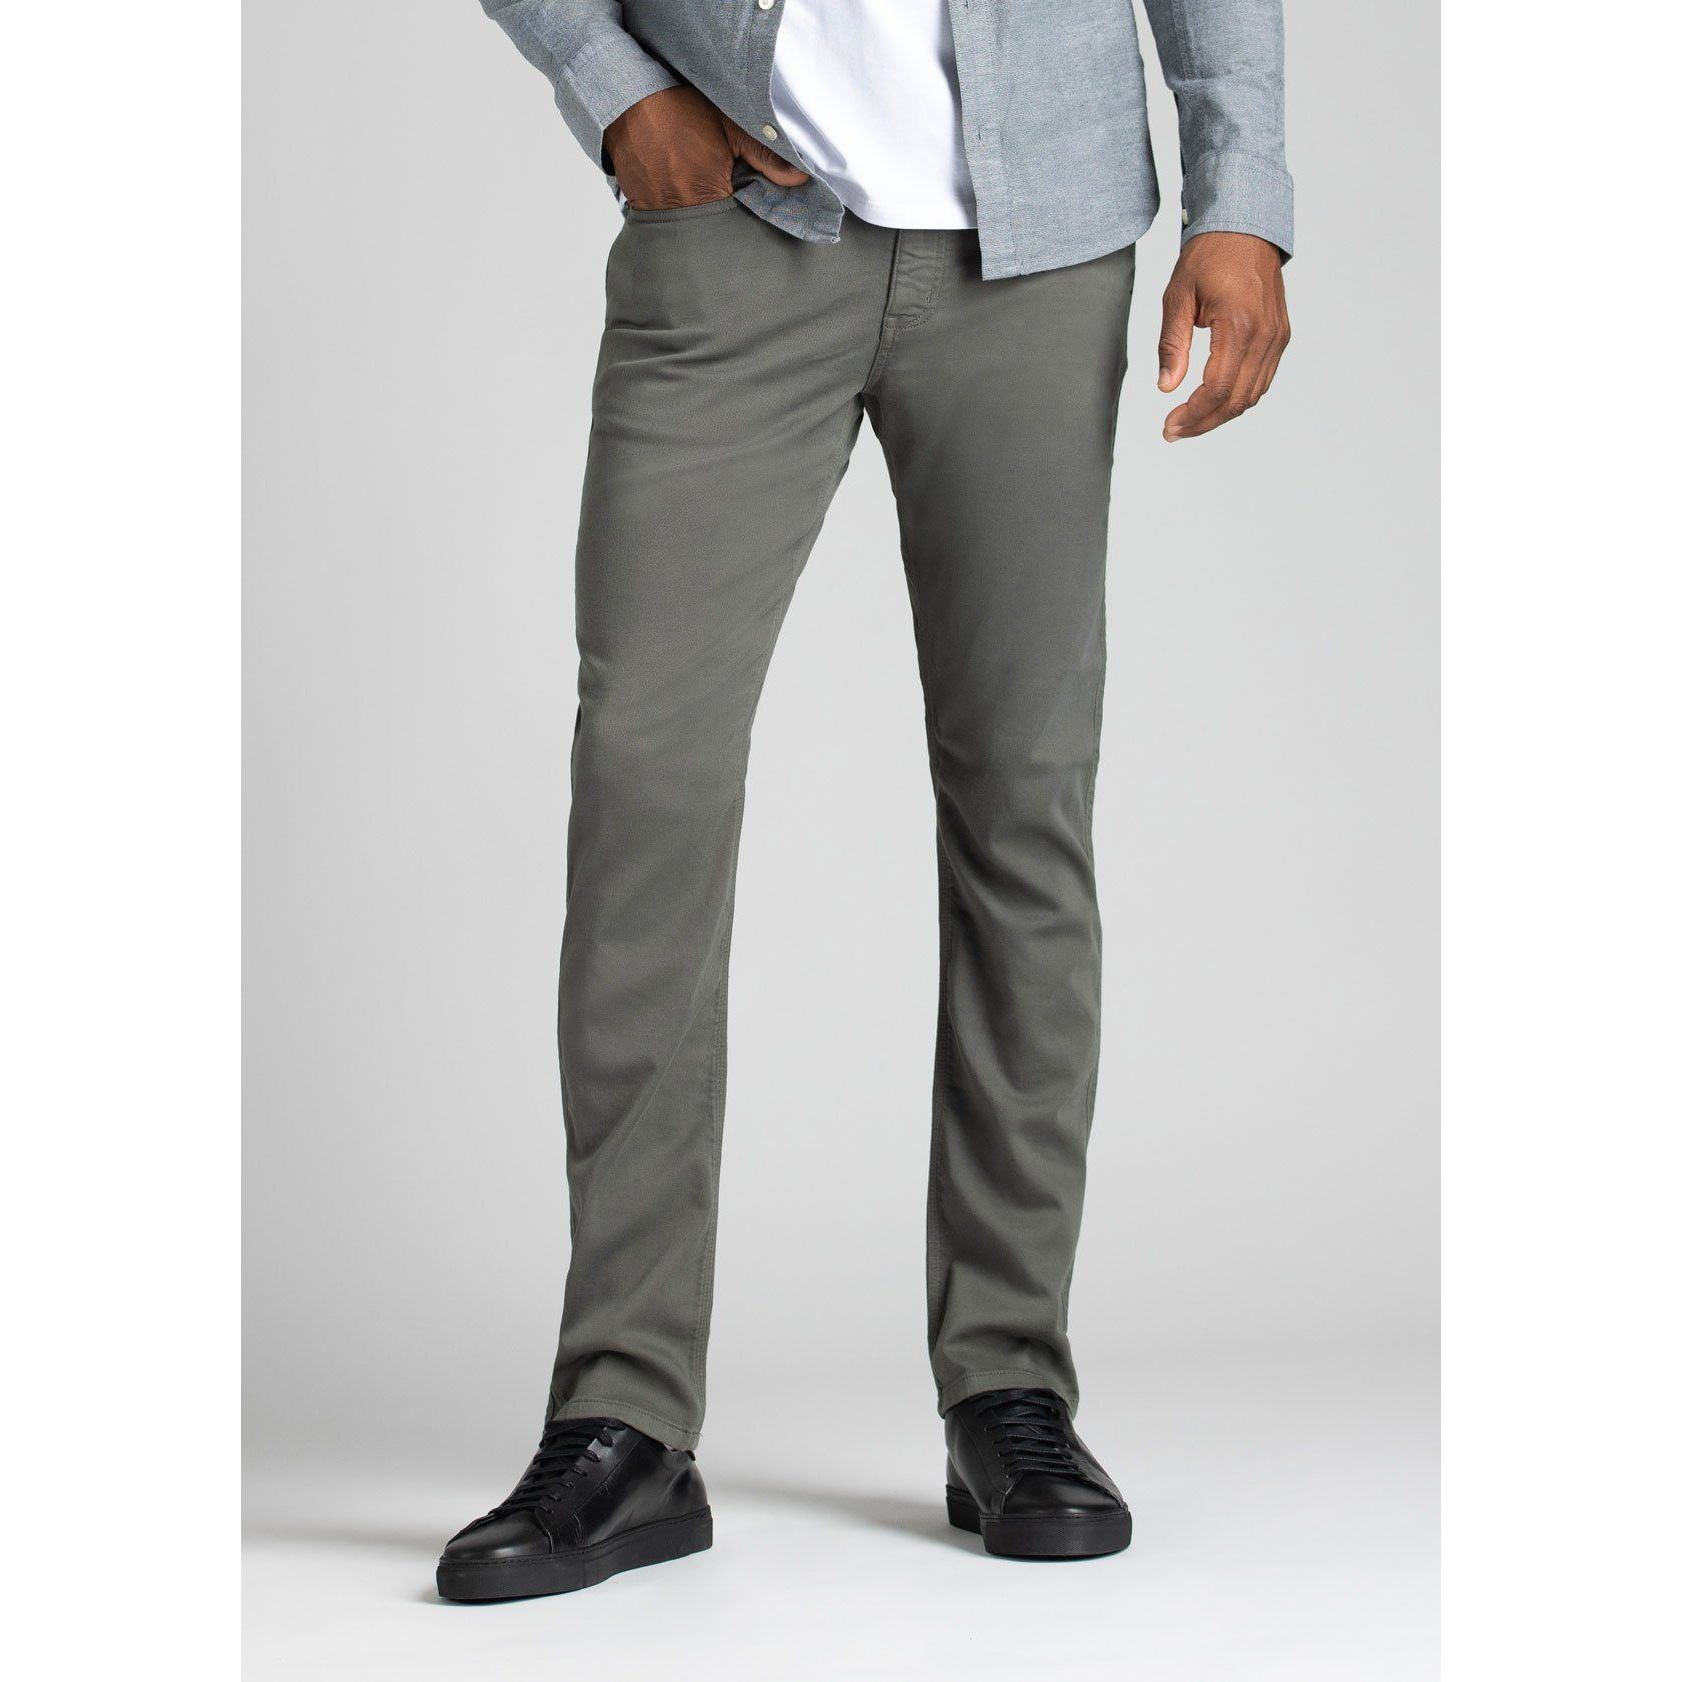 NO SWEAT PANT RELAXED FIT - ME